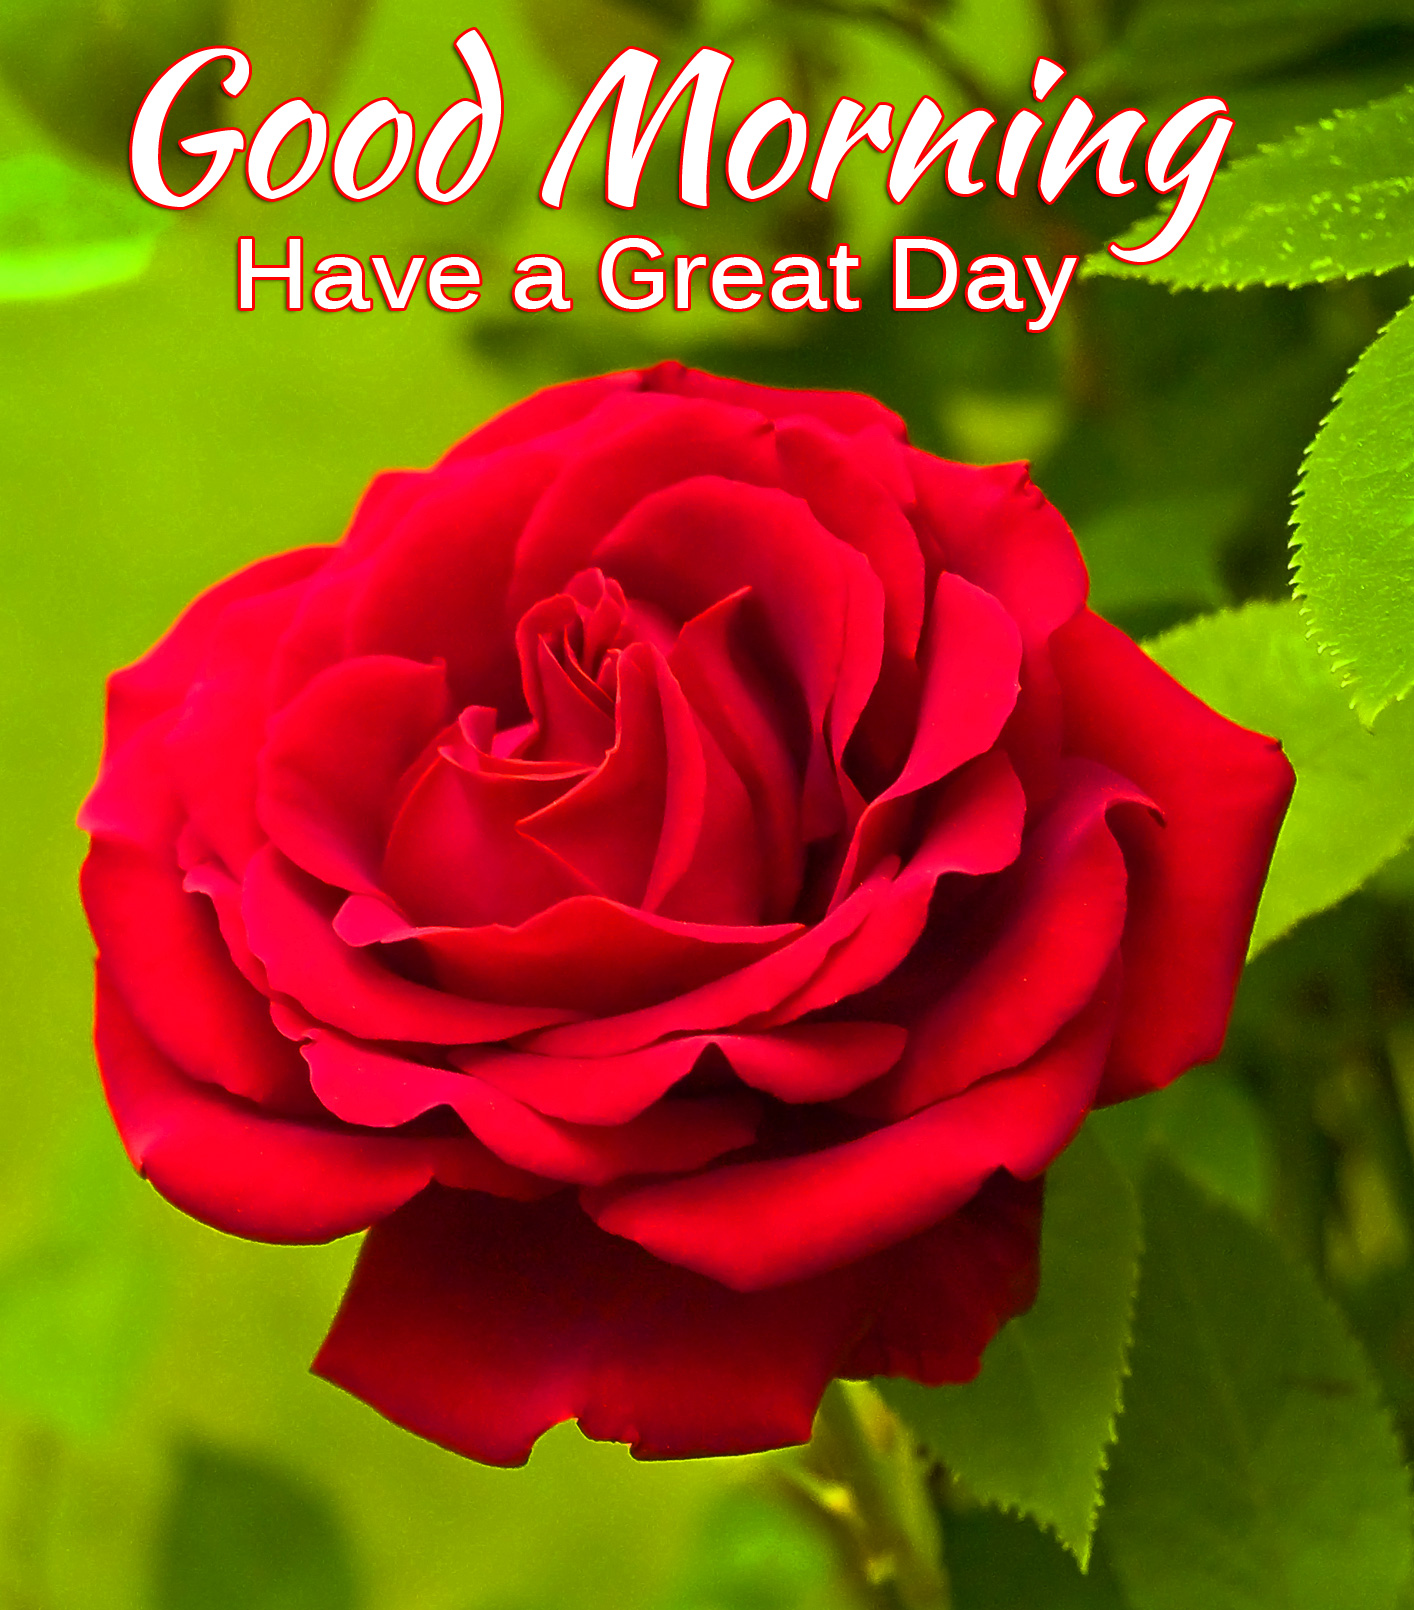 Red Rose Good Morning Have a Great Day Picture